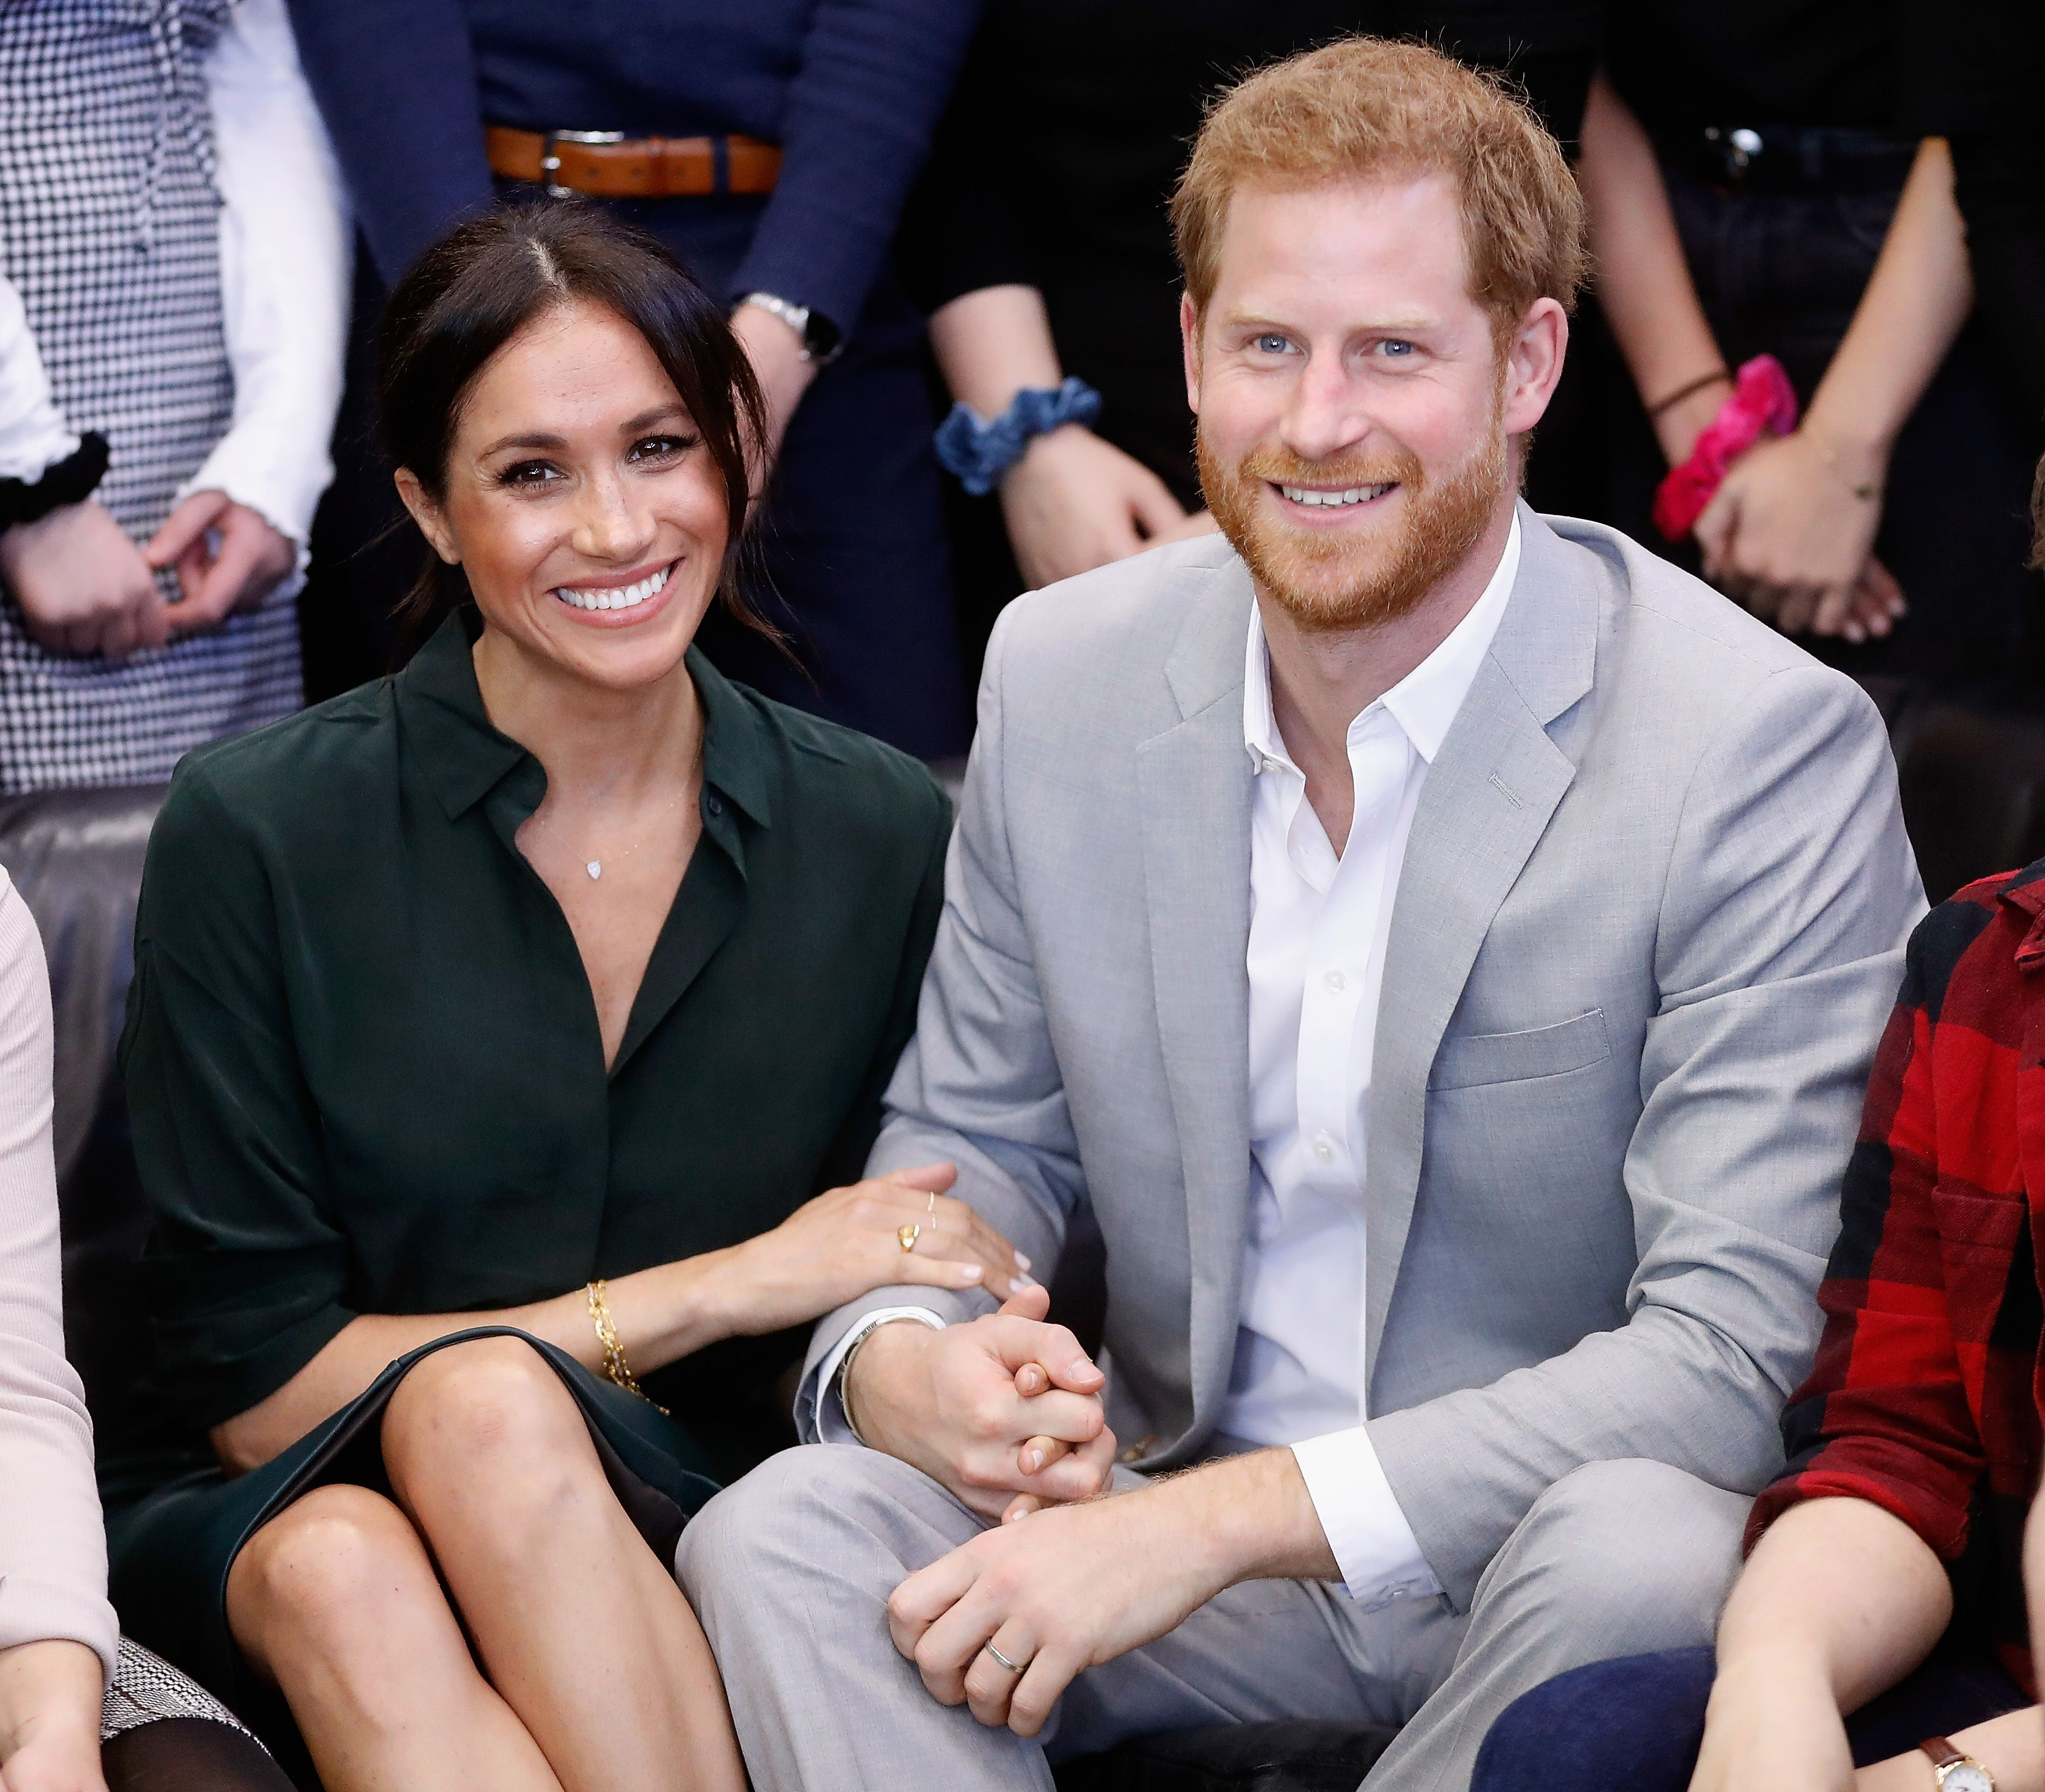 Meghan Markle and Prince Harry make an official visit to the Joff Youth Centre in Peacehaven, Sussex on October 3, 2018 in Peacehaven, United Kingdom | Photo: Getty Images